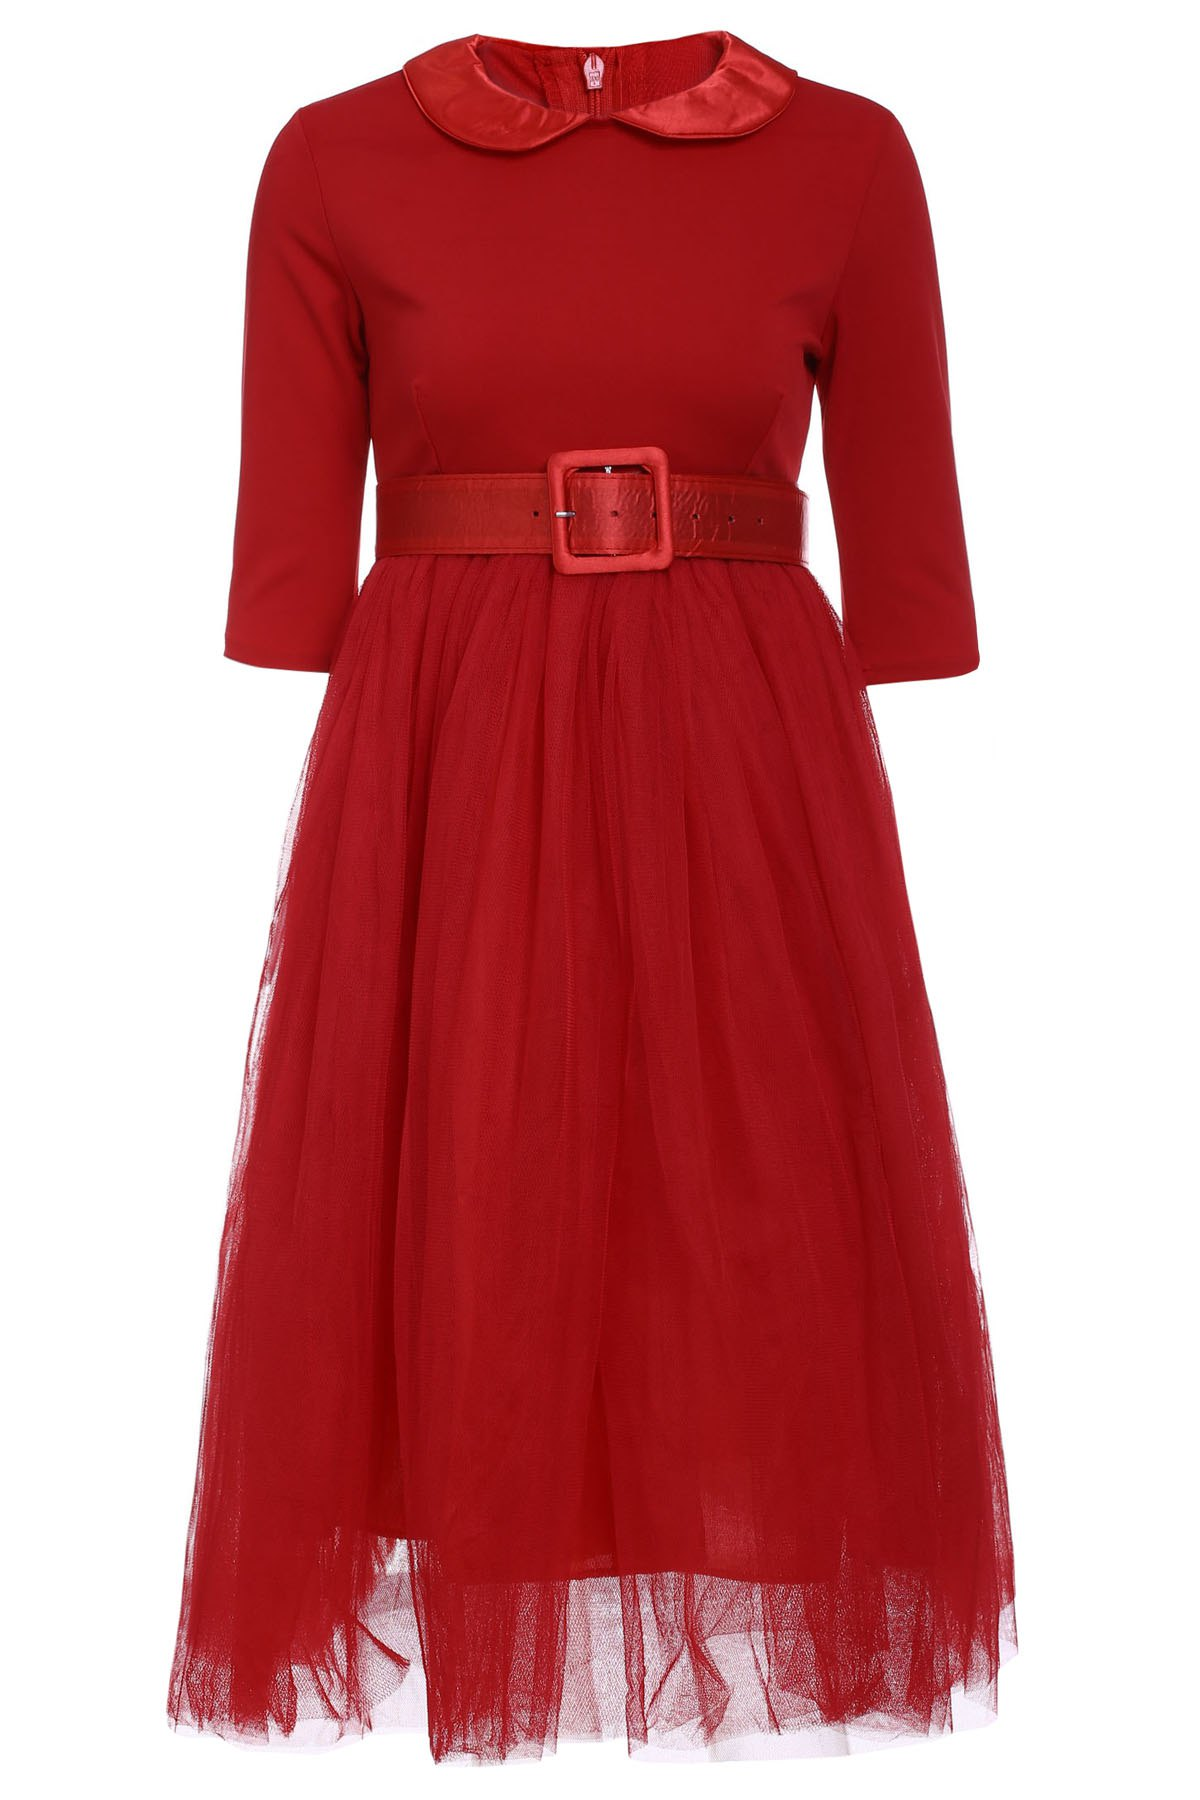 Graceful Long Sleeve Peter Pan Collar A-Line Voile Spliced Red Women' Dress